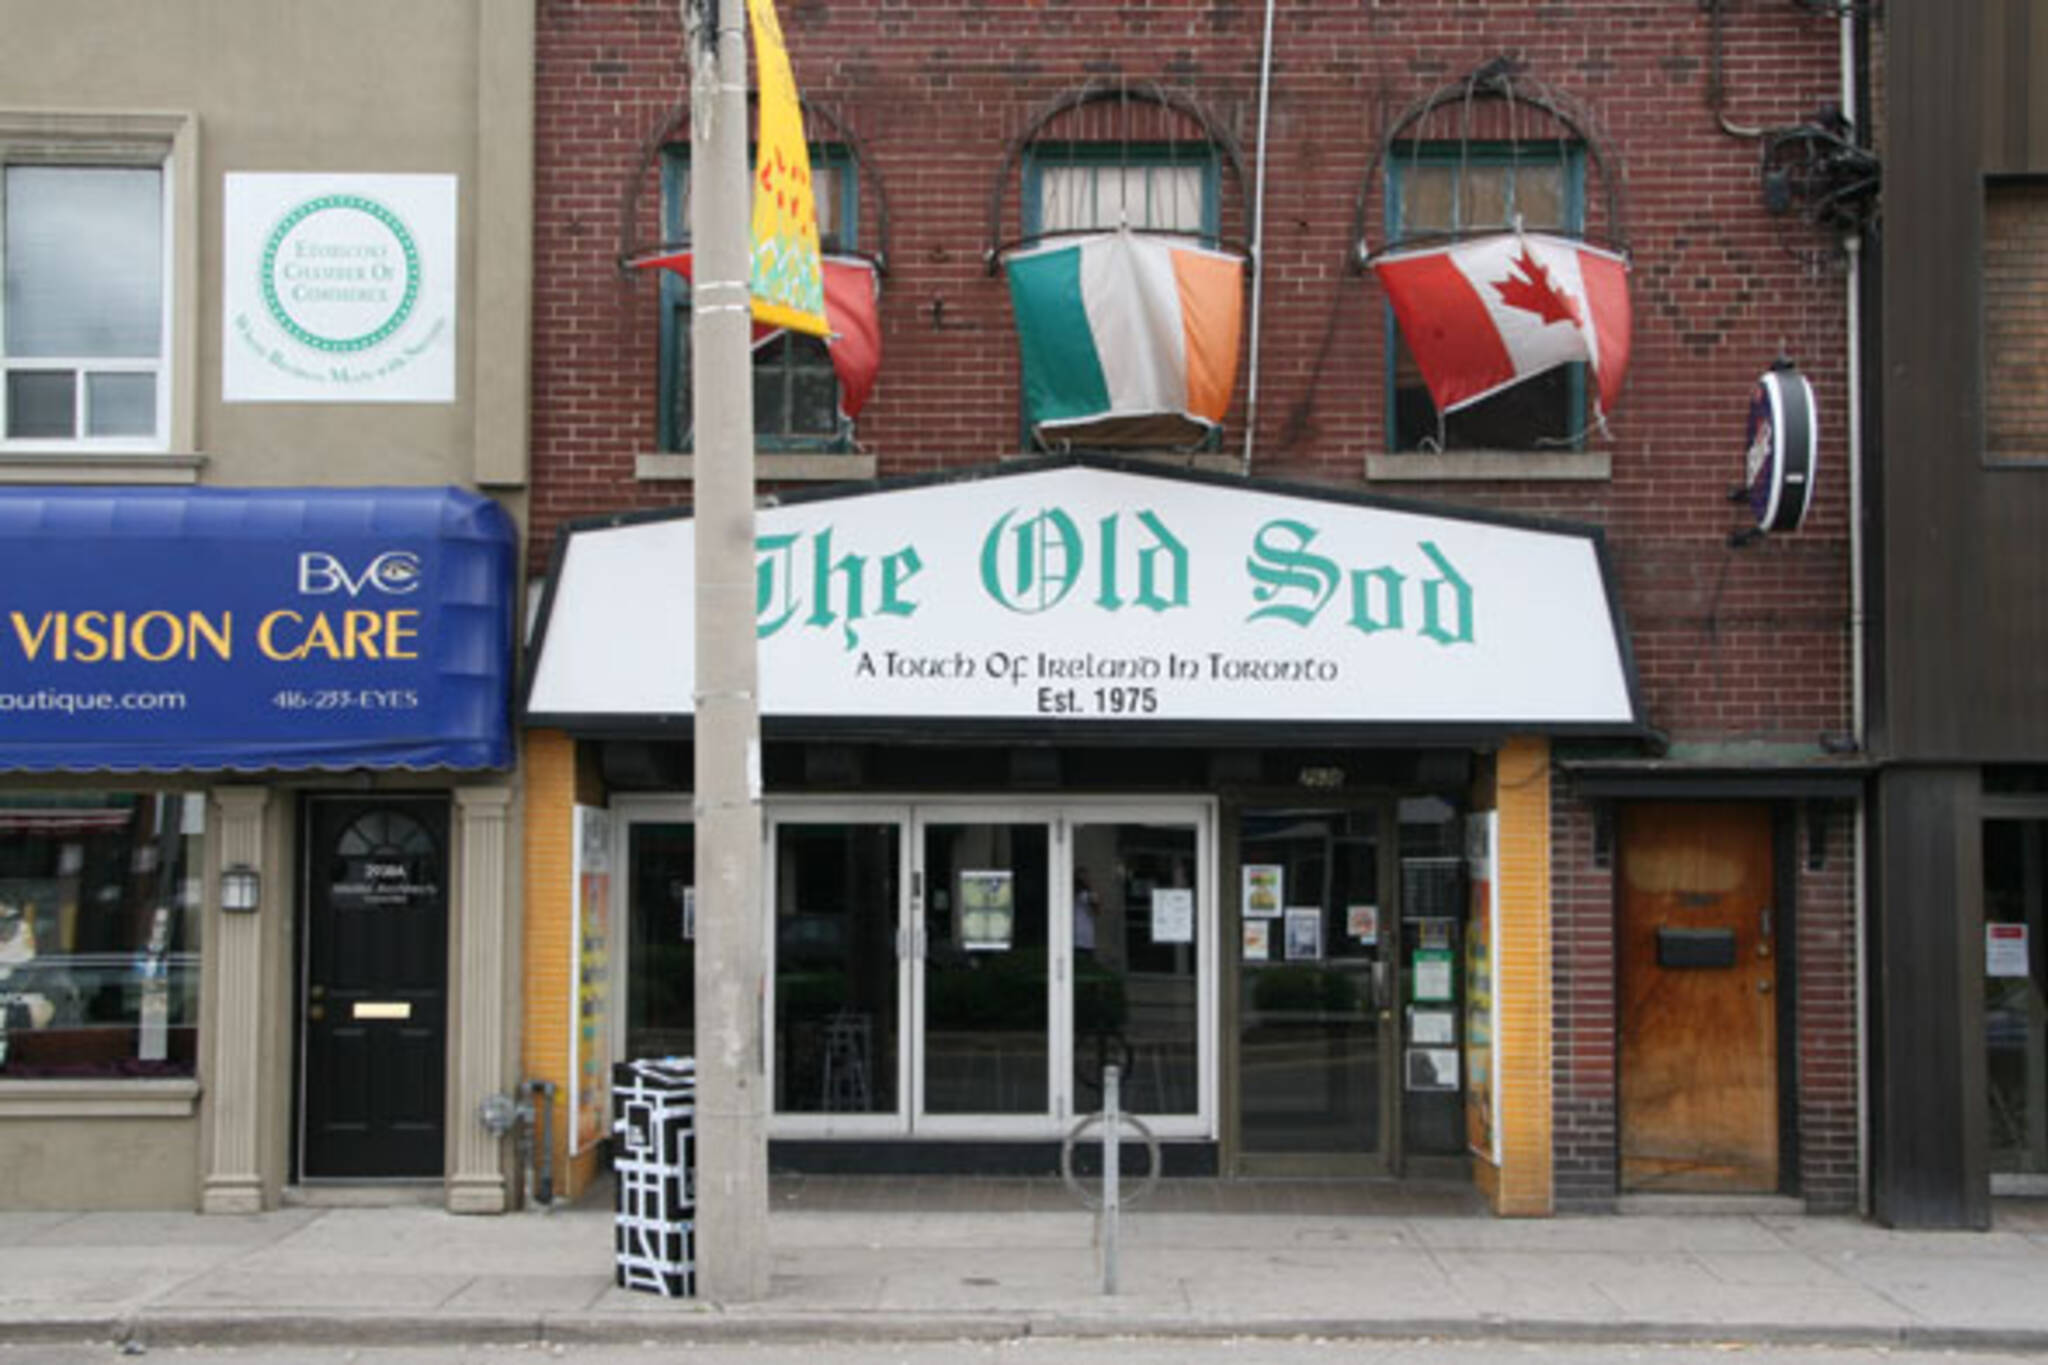 The Old Sod Toronto